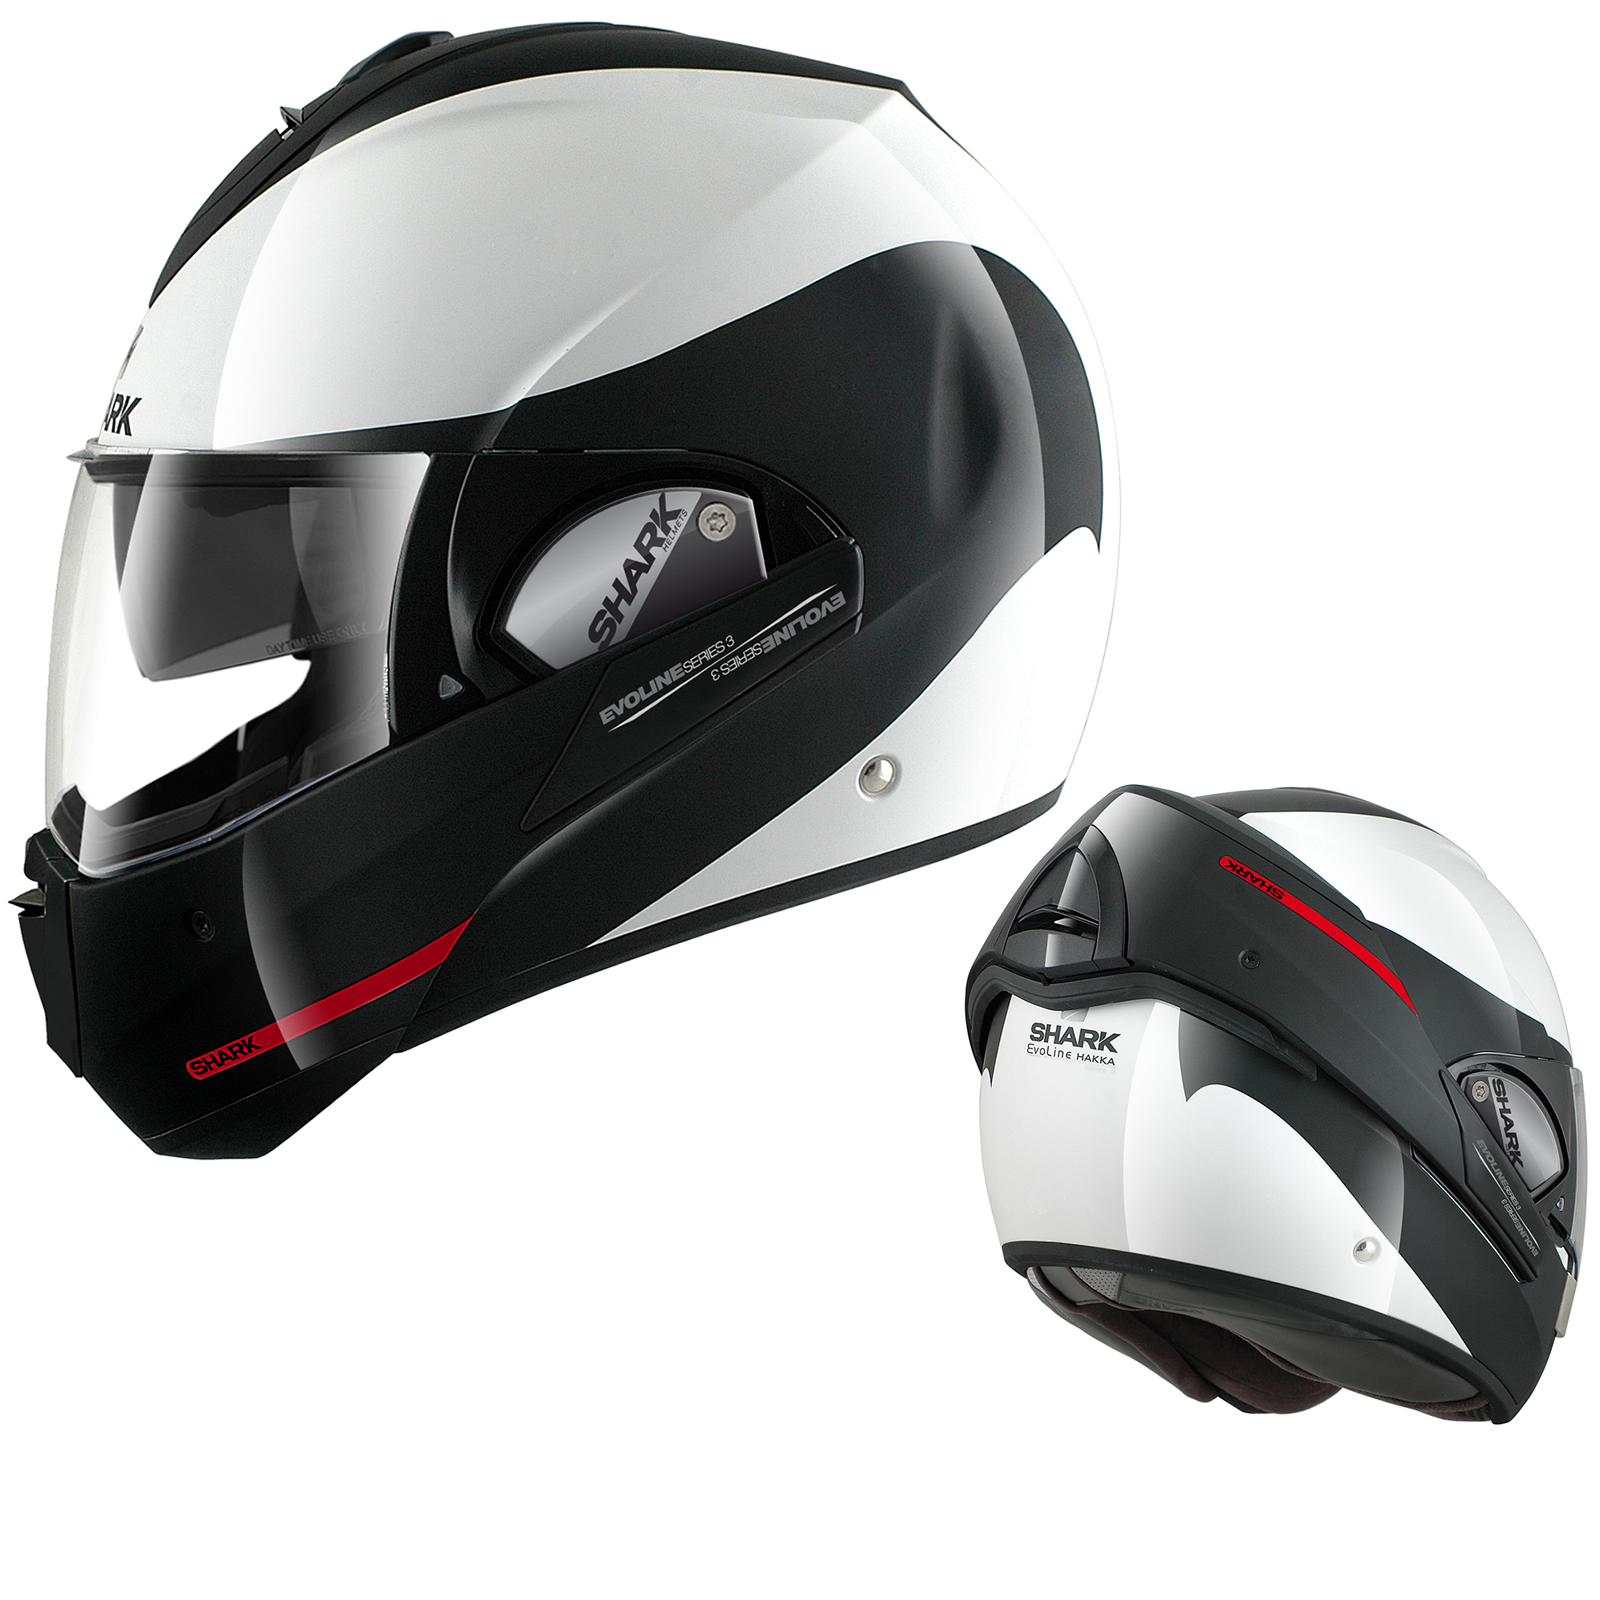 shark evoline series 3 st haka flip up front full open face motorcycle helmet. Black Bedroom Furniture Sets. Home Design Ideas